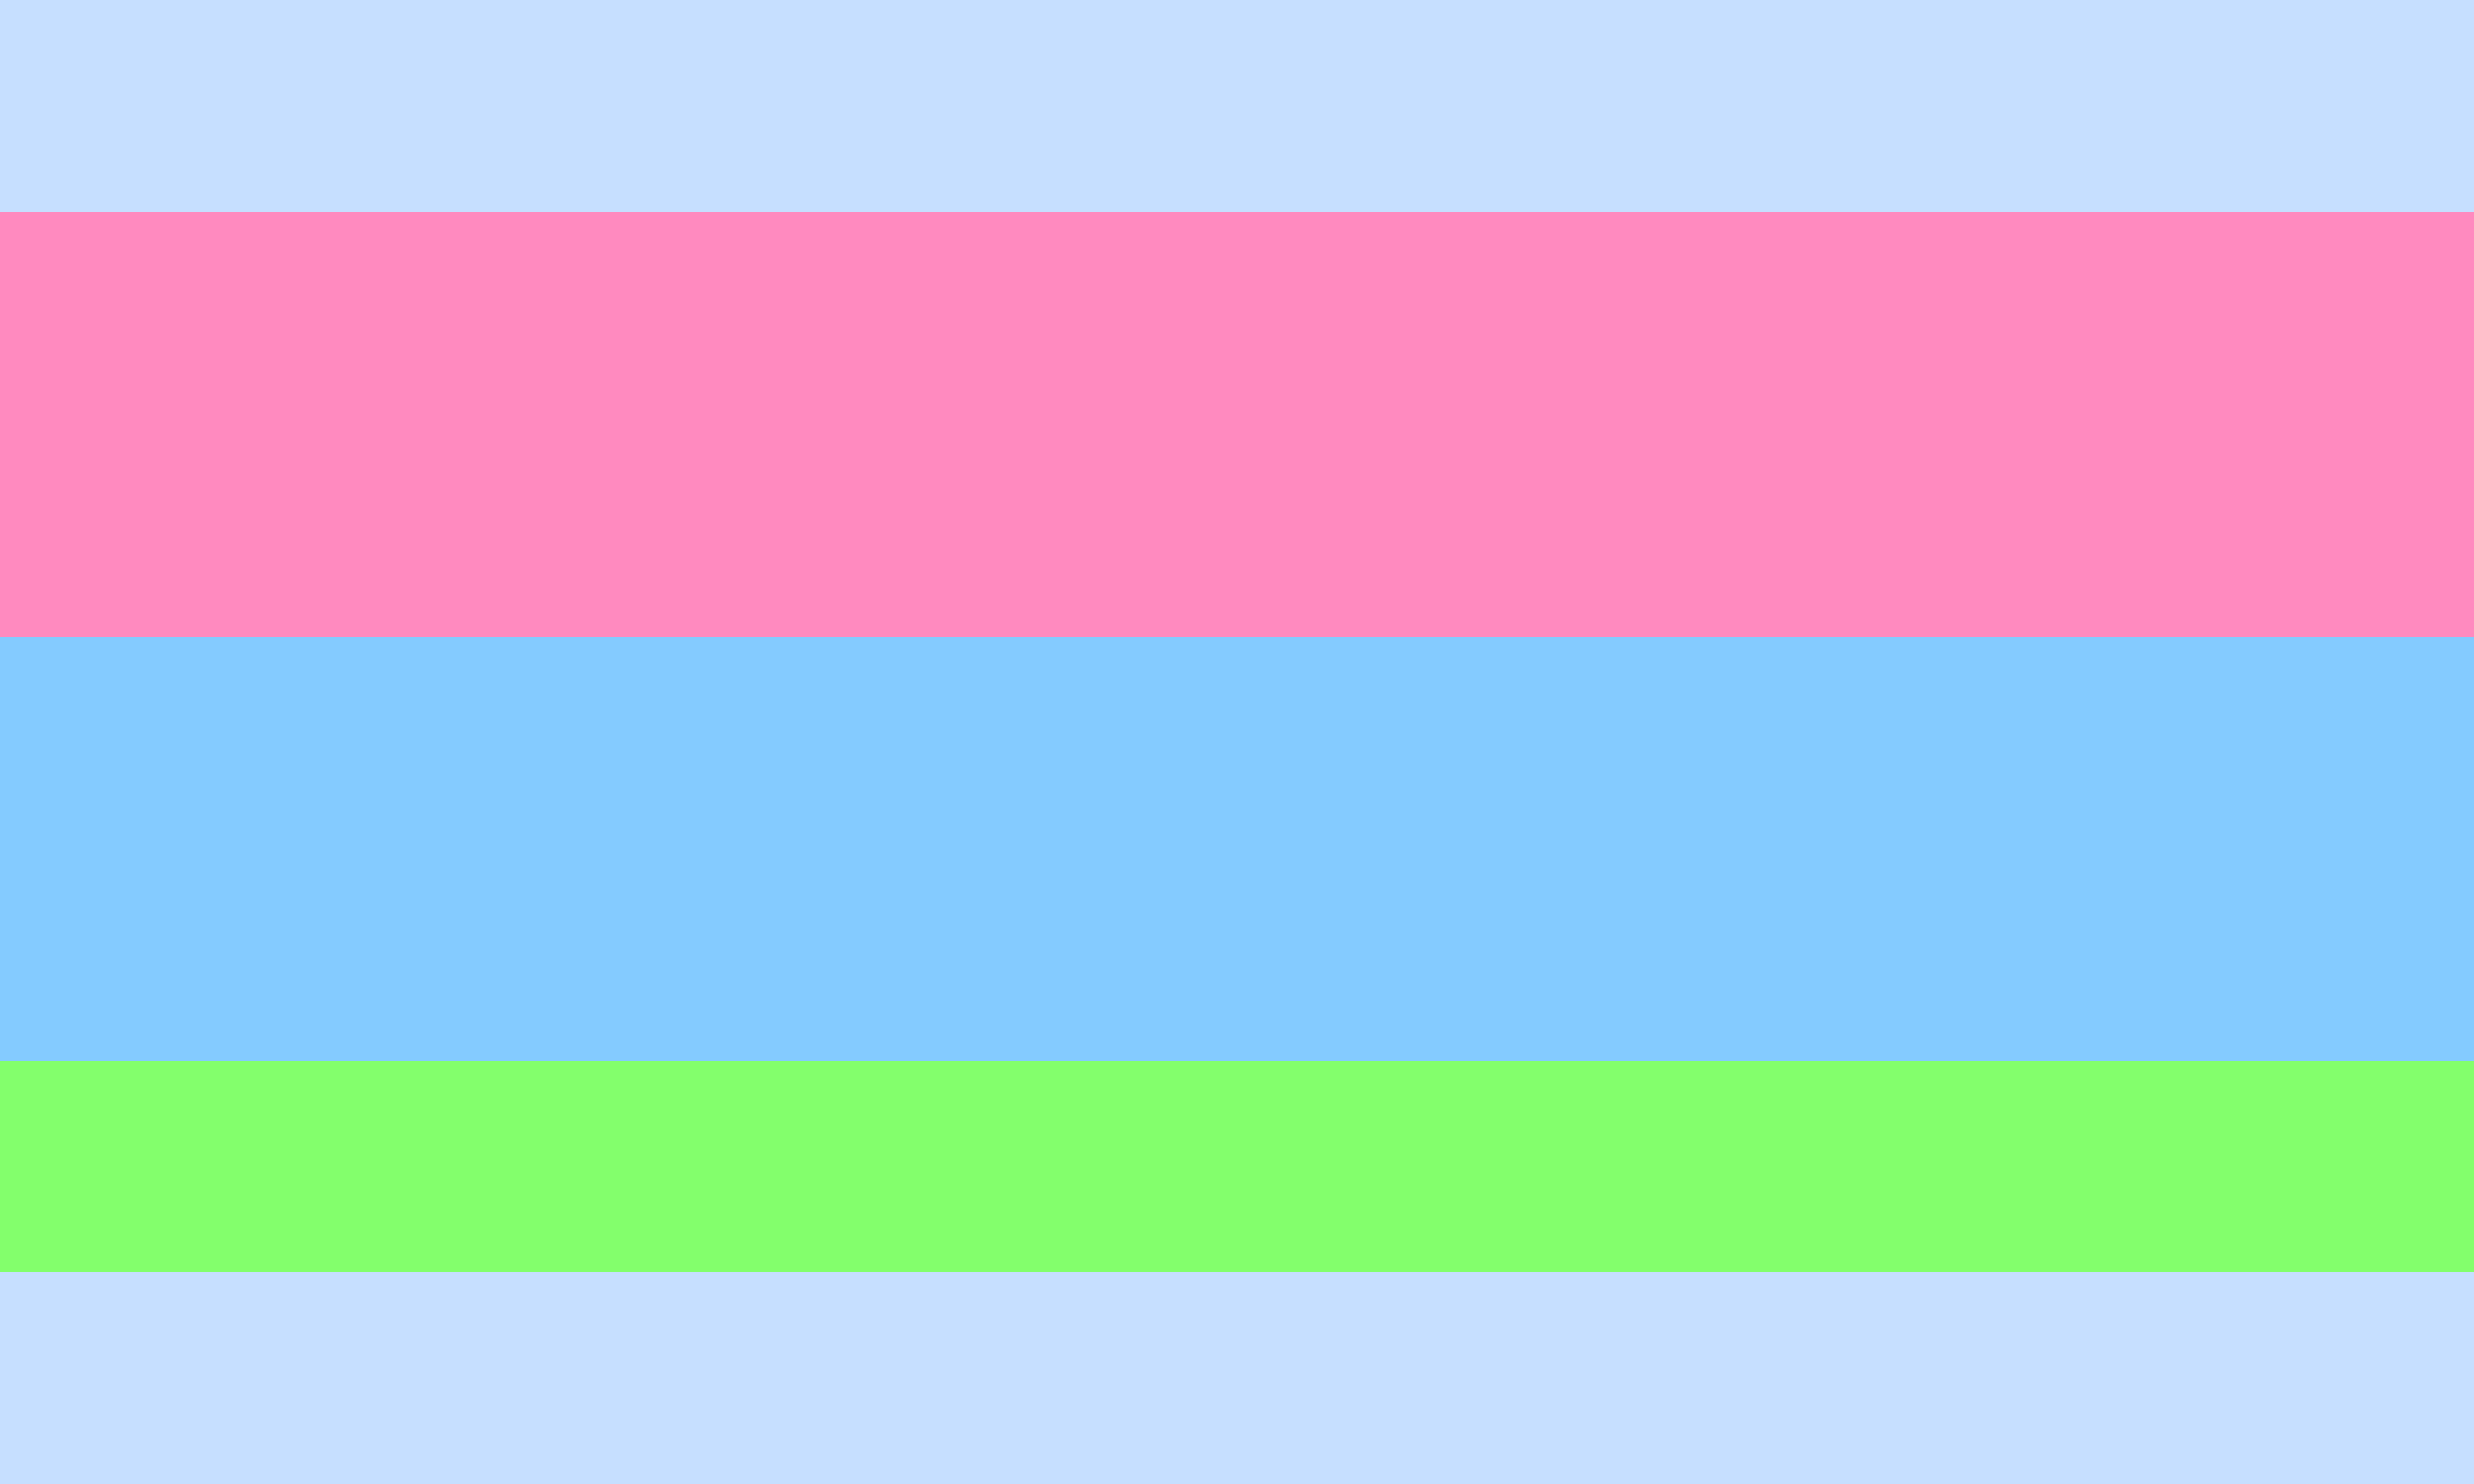 polyalterous feminine masculine leaning pride flag by pride flags